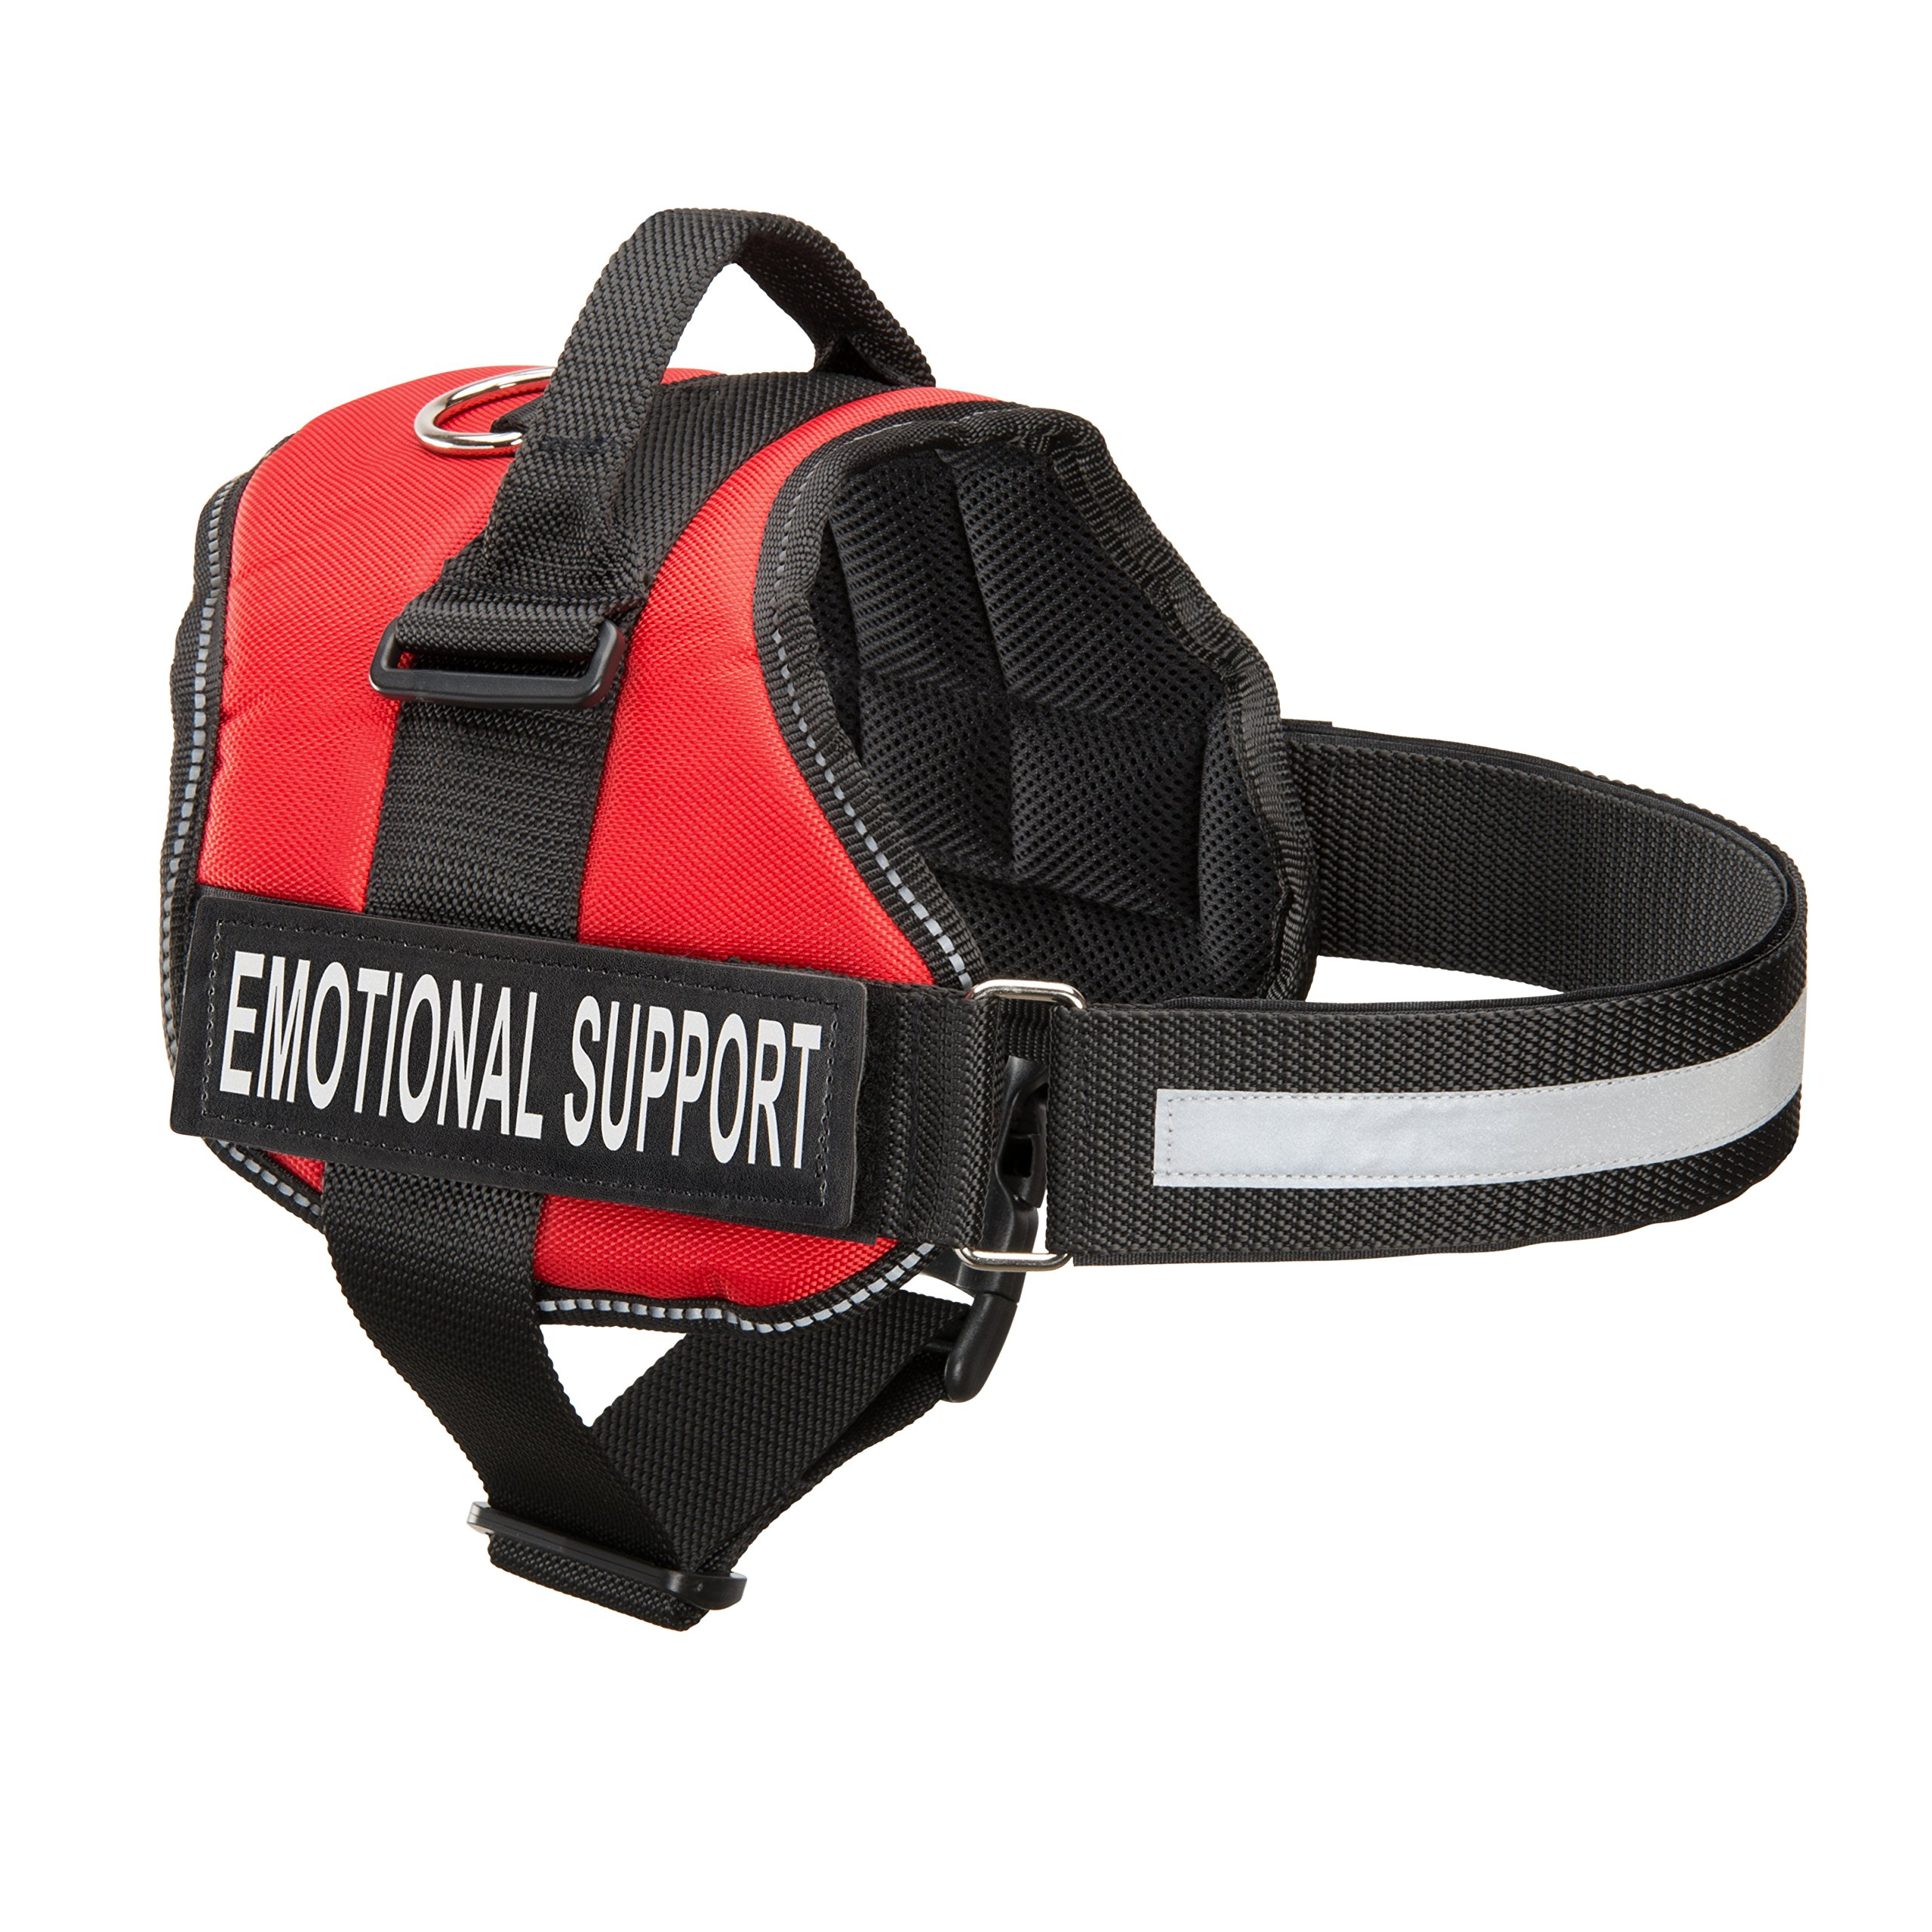 Emotional Support Dog Harness With Reflective Straps, Interchangeable Patches, & Top Mount Handle | 7 Adjustable Sizes | Heavy Duty Construction